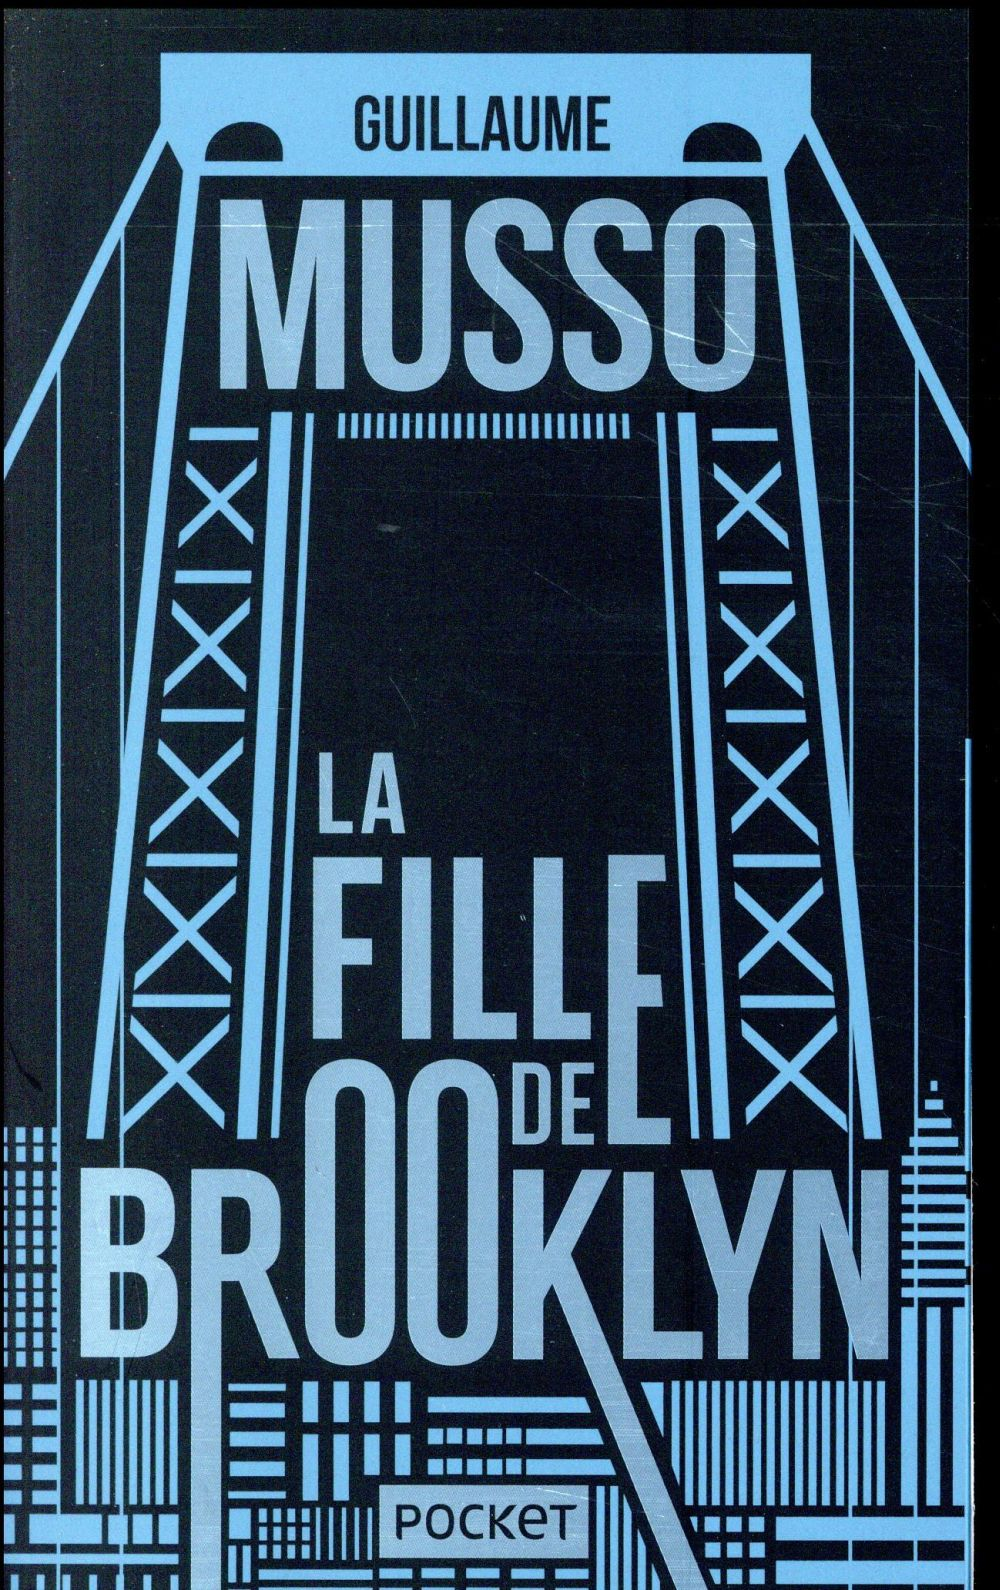 La Fille De Brooklyn Guillaume Musso Pocket Poche Lamartine Paris